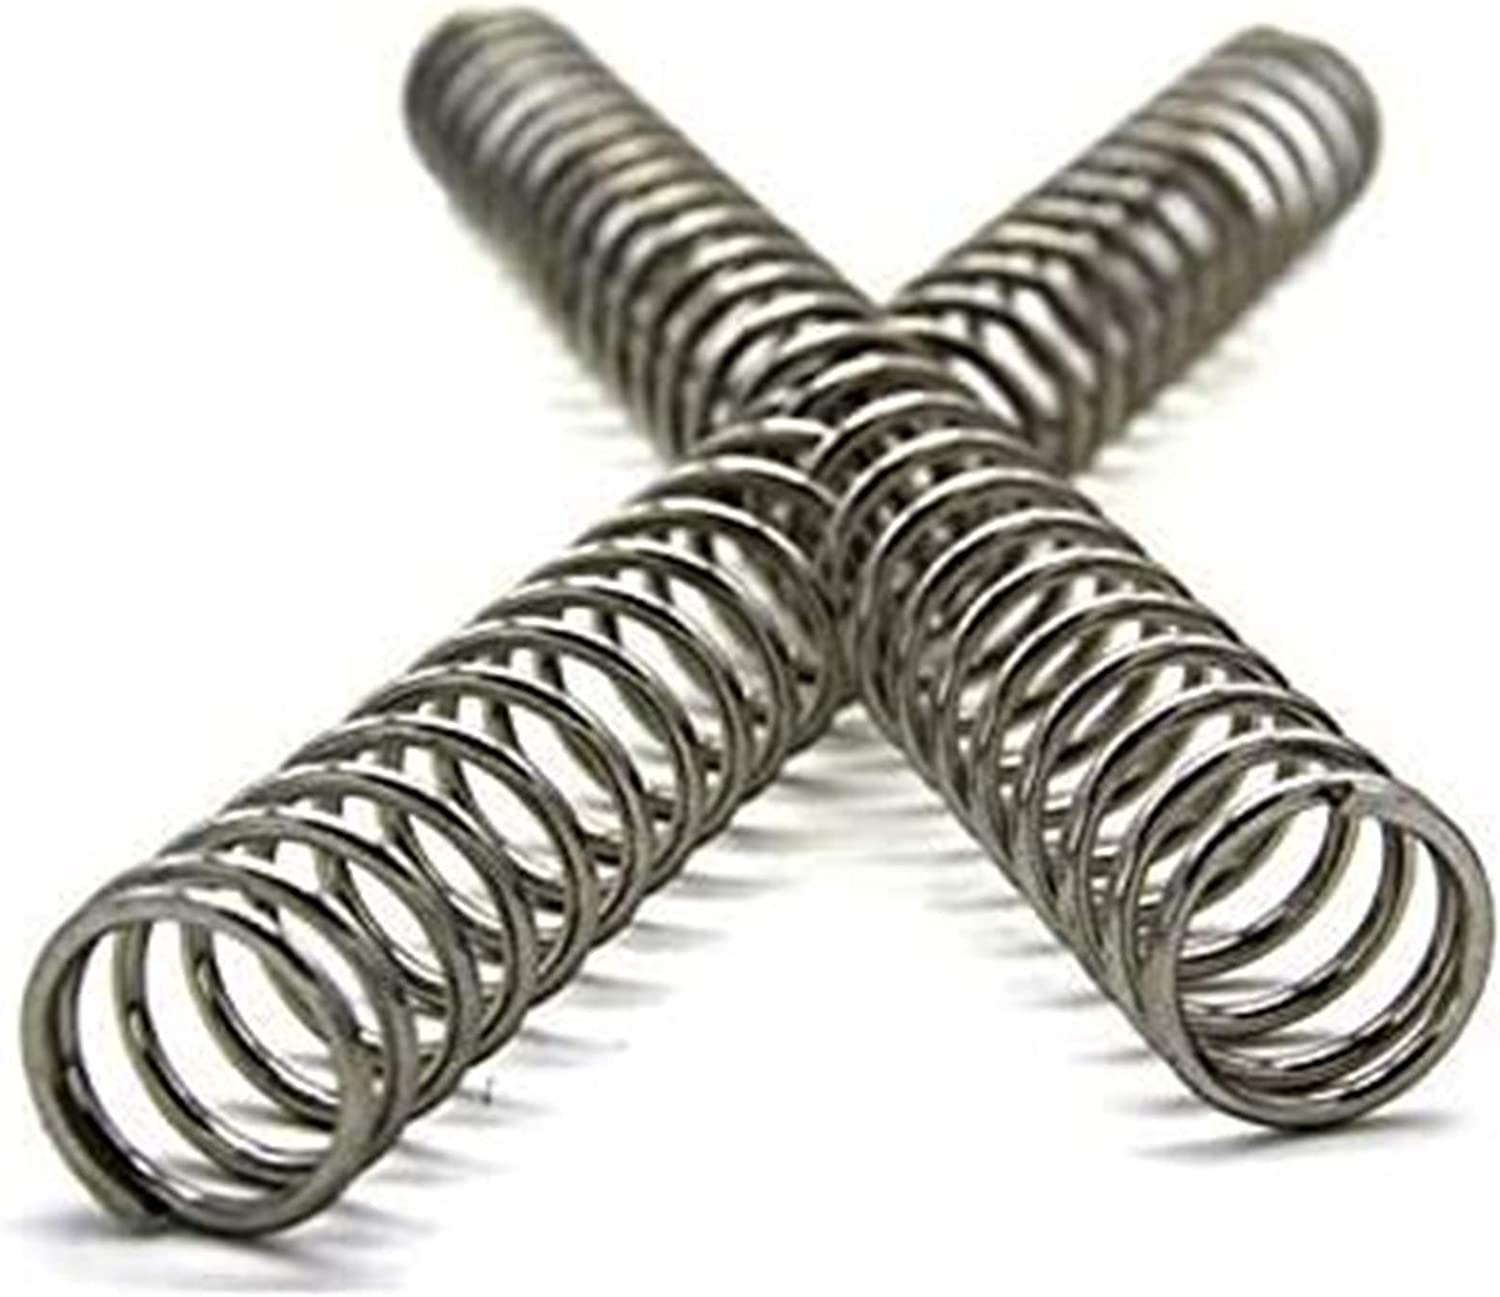 Mechanical Parts Extension Houston Mall Compression Spring 10pcs-Multiple free spe